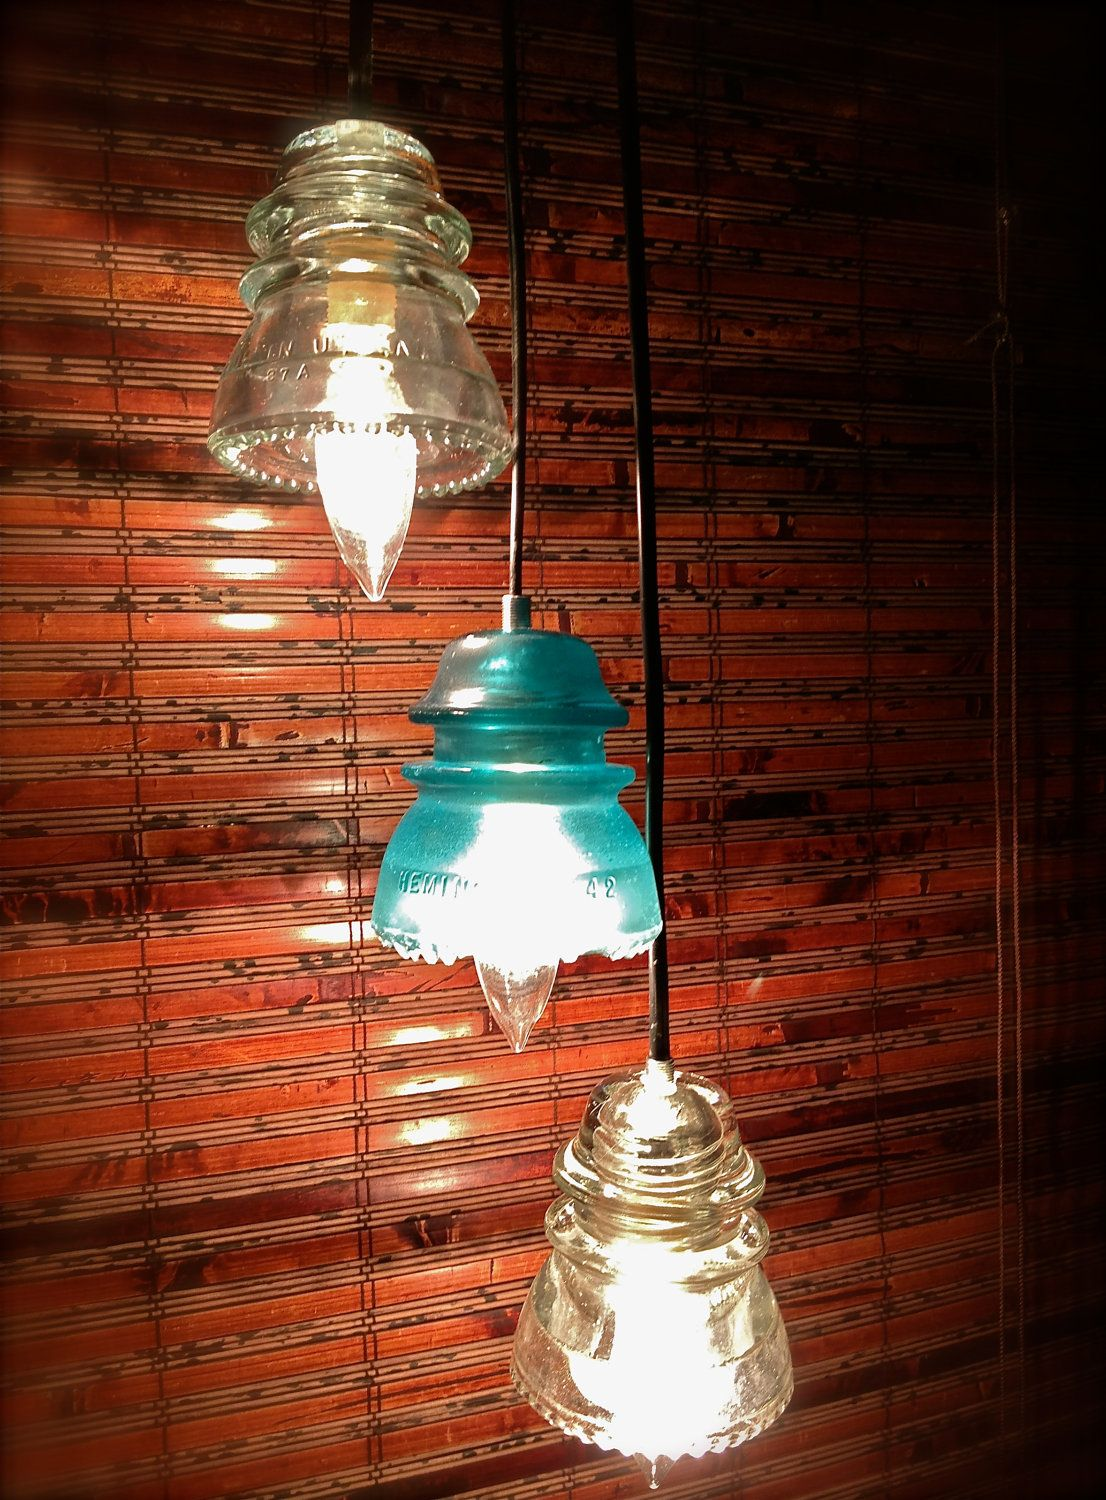 Glass insulator pendant light kit feed - Pendants Very Cute Great Idea For Glass Insulators